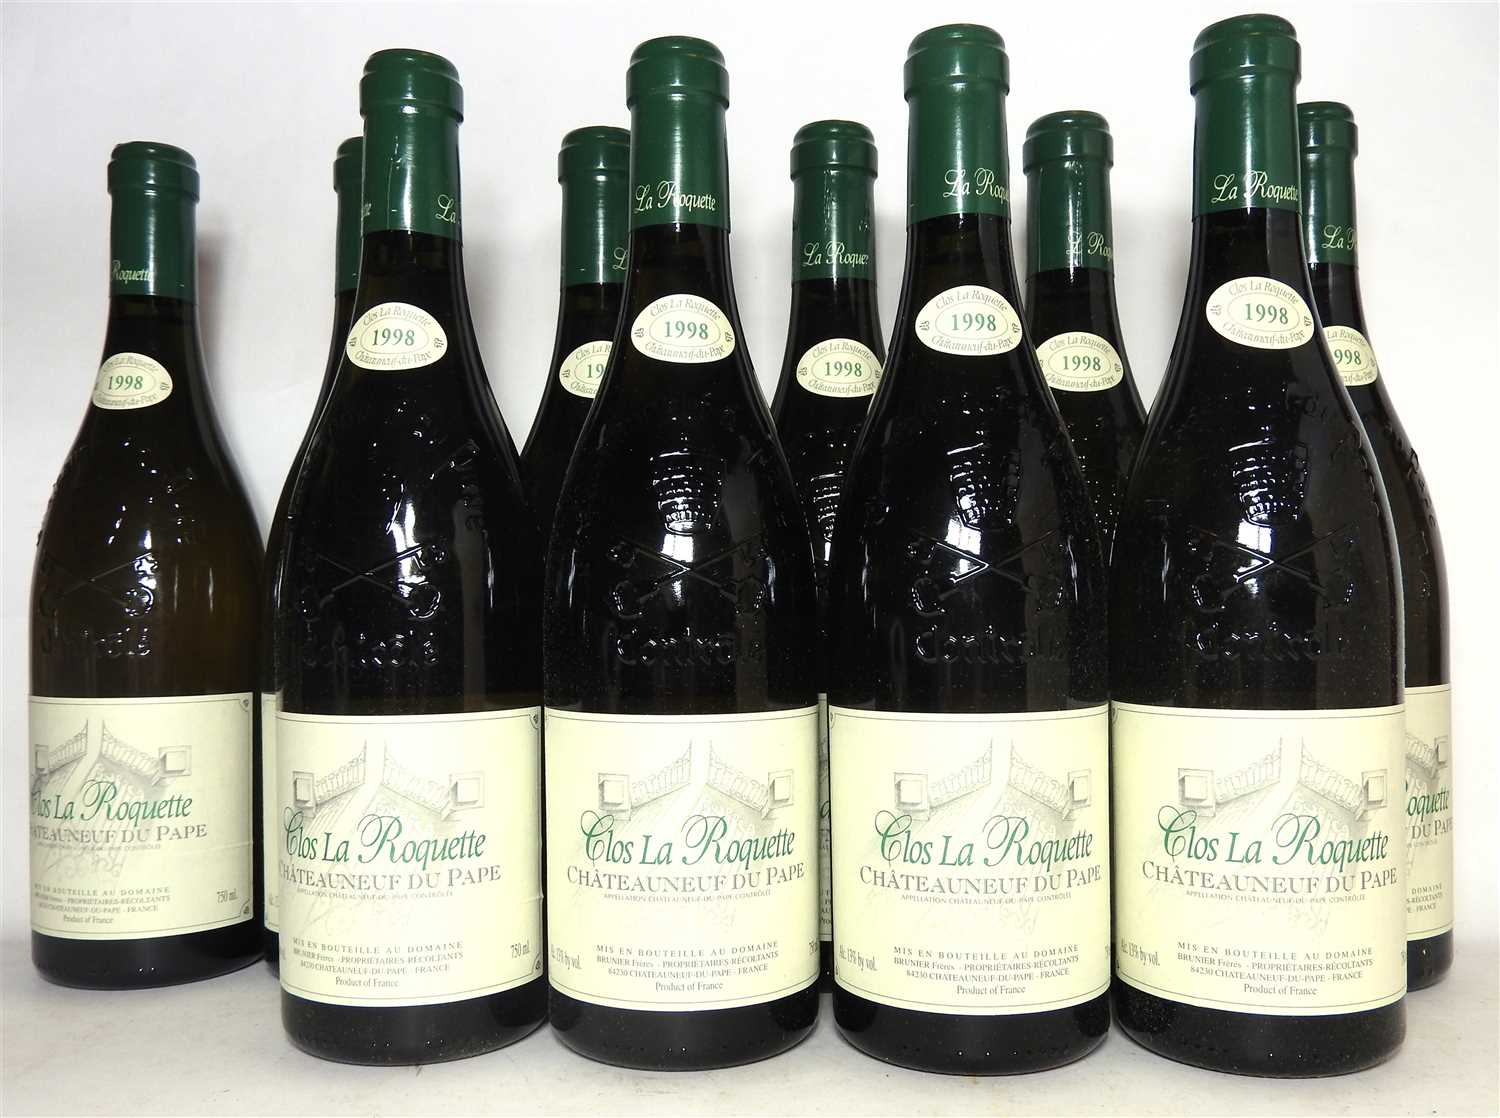 Lot 3-Clos La Roquete, Châteauneuf-du-Pape, 1998, ten bottles (in box for twelve bottles)